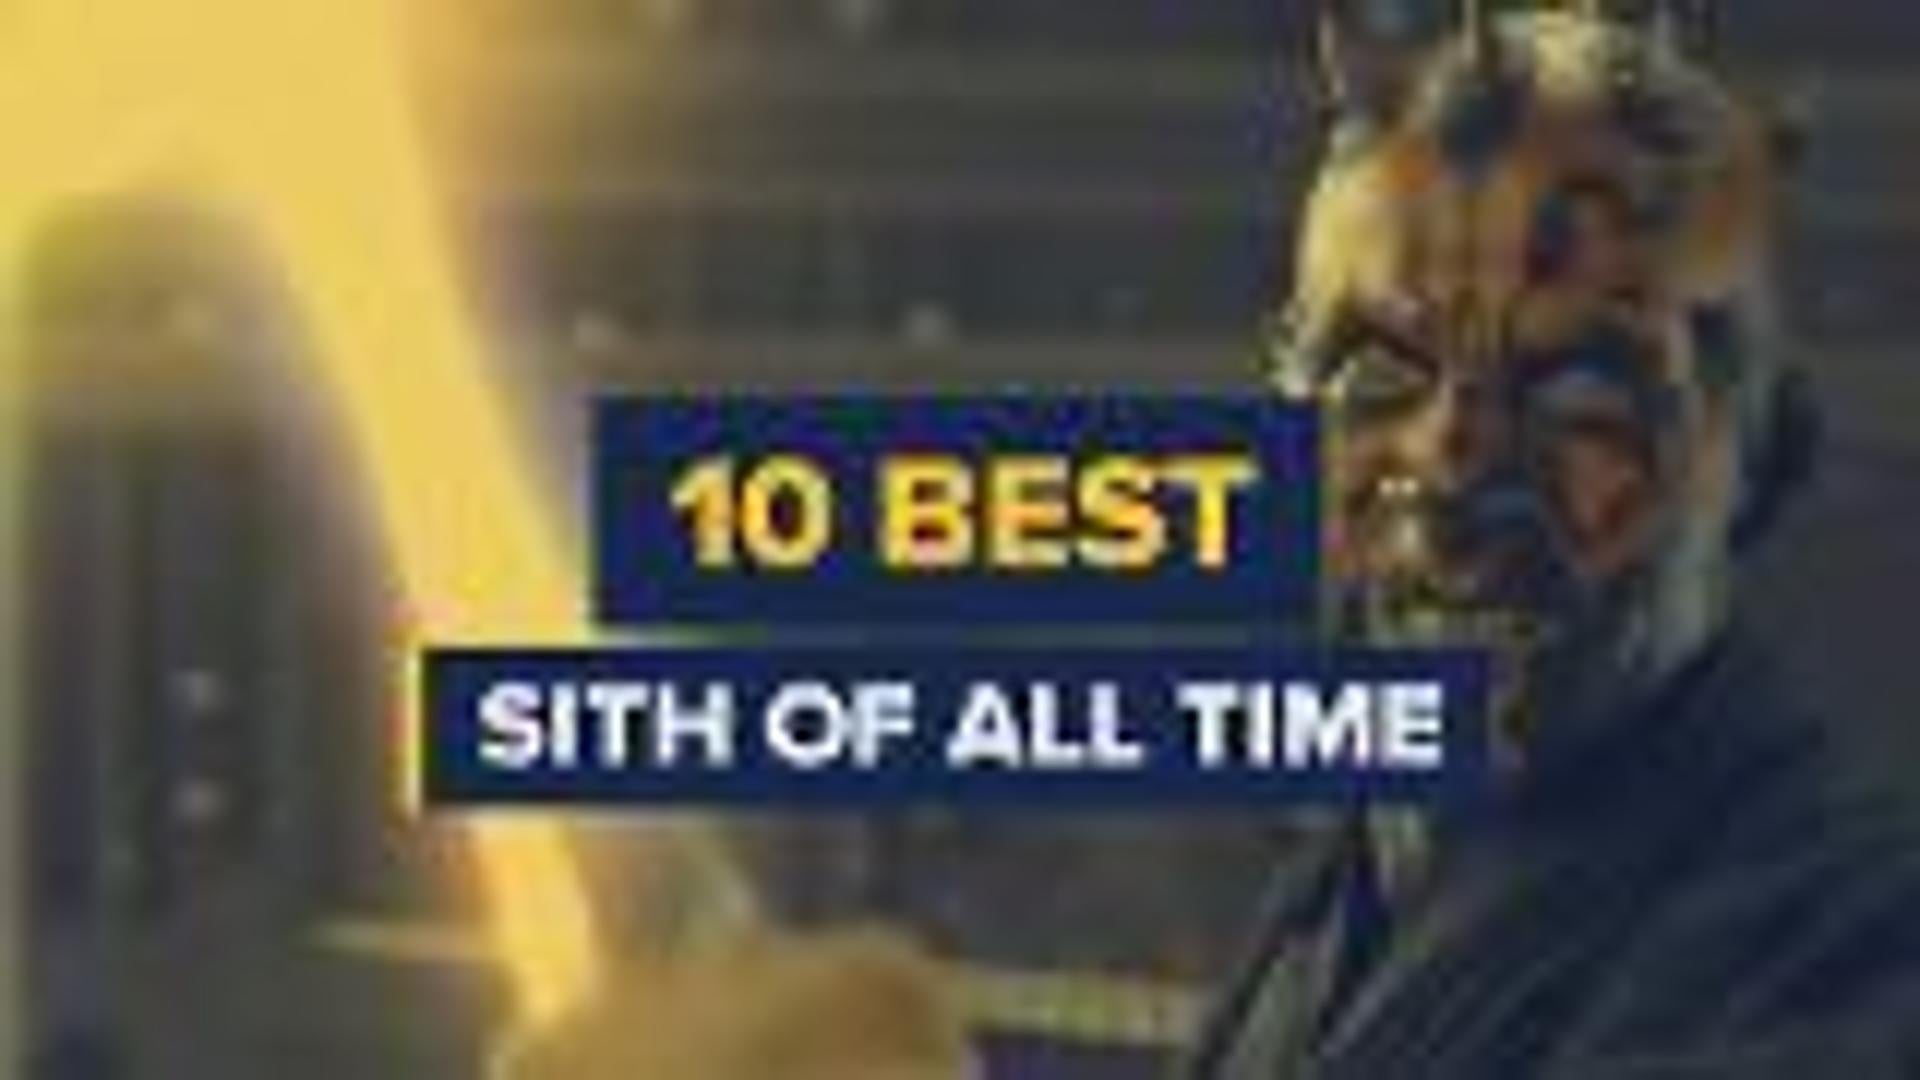 10 Best Sith of All Time screen capture